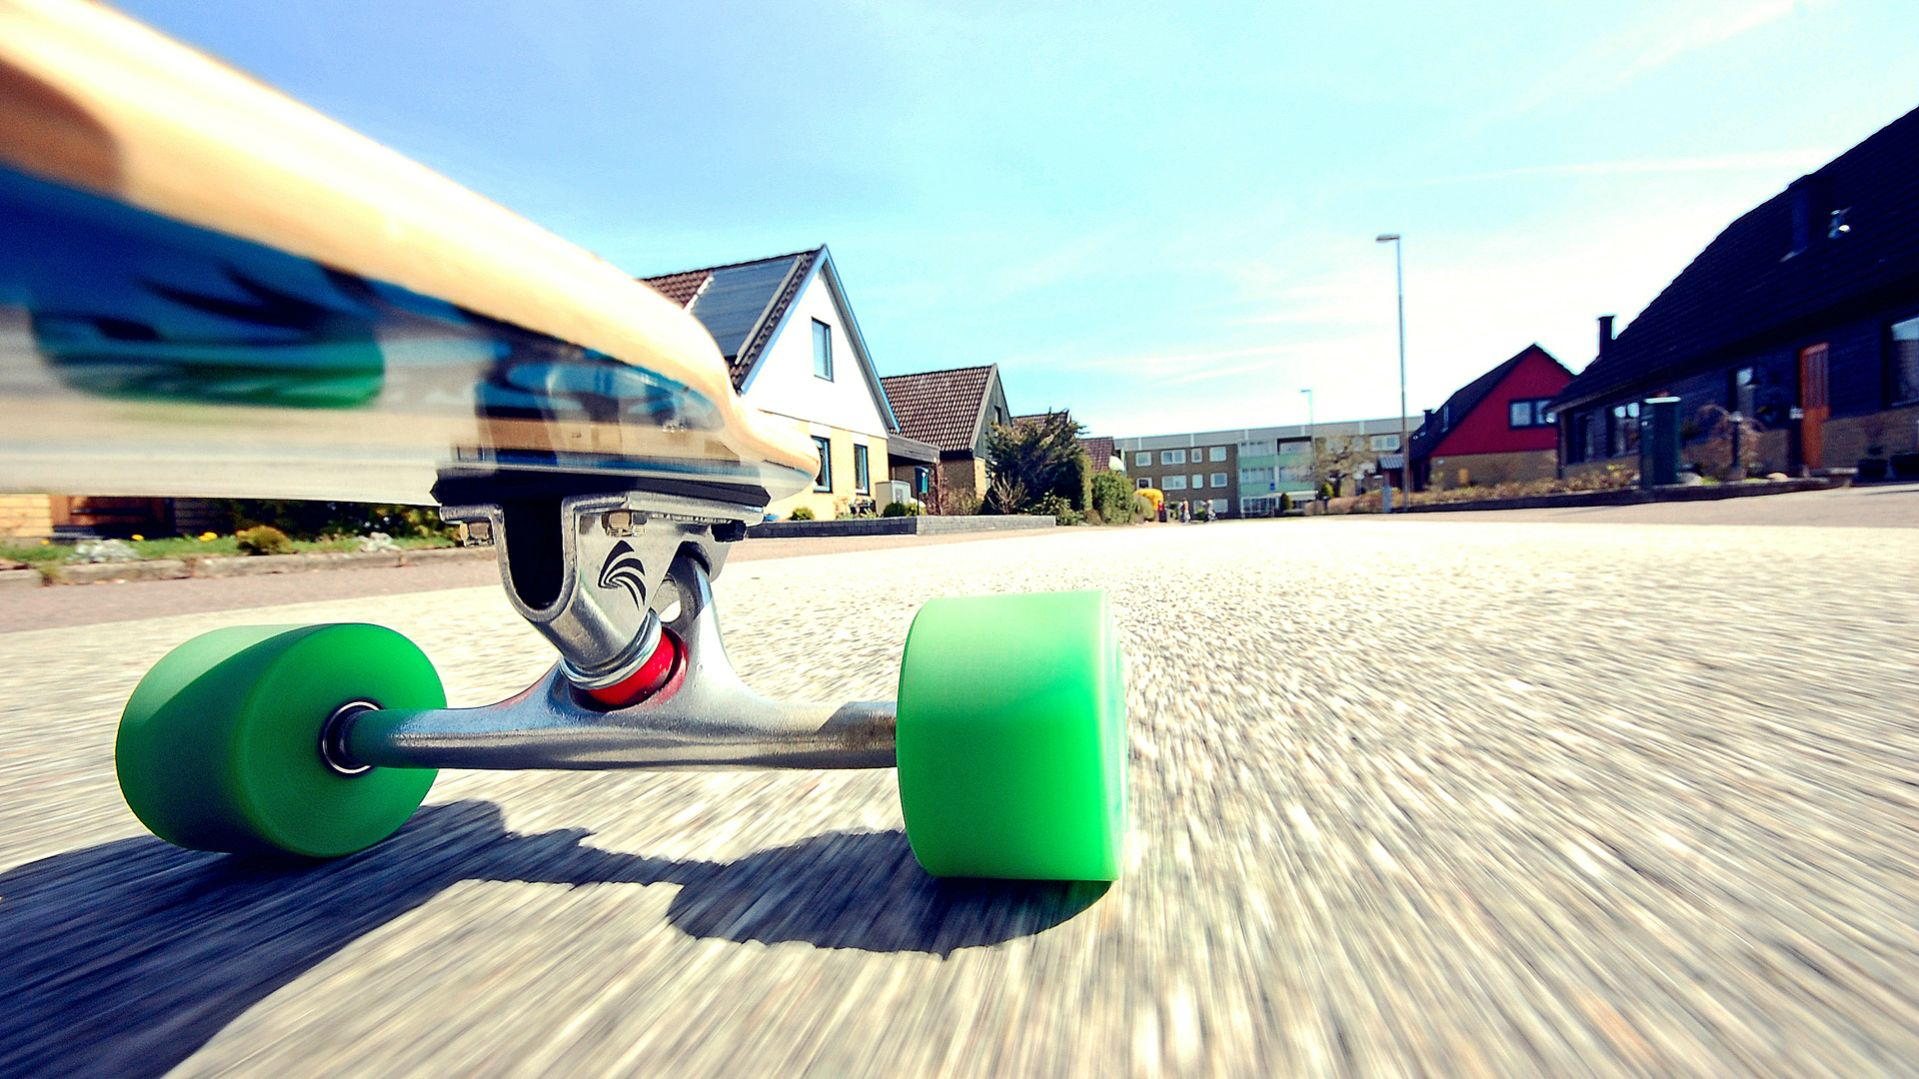 Longboard Wallpaper 844990 Longboard Wallpaper 844958 Longboard 1919x1079